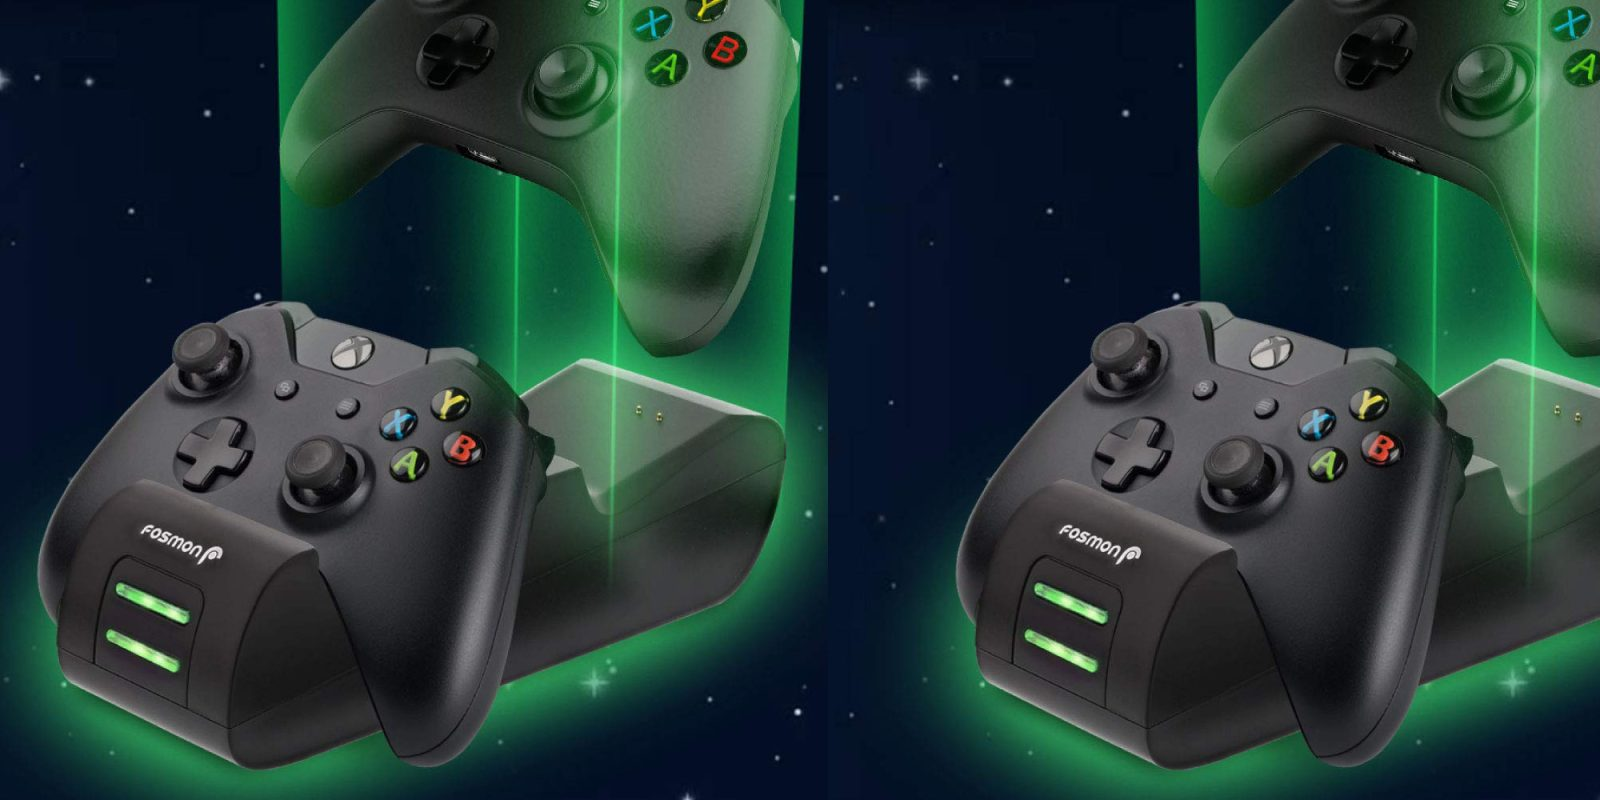 Fosmon's highly-rated Dual Xbox Controller Charger is now $12 (50% off)